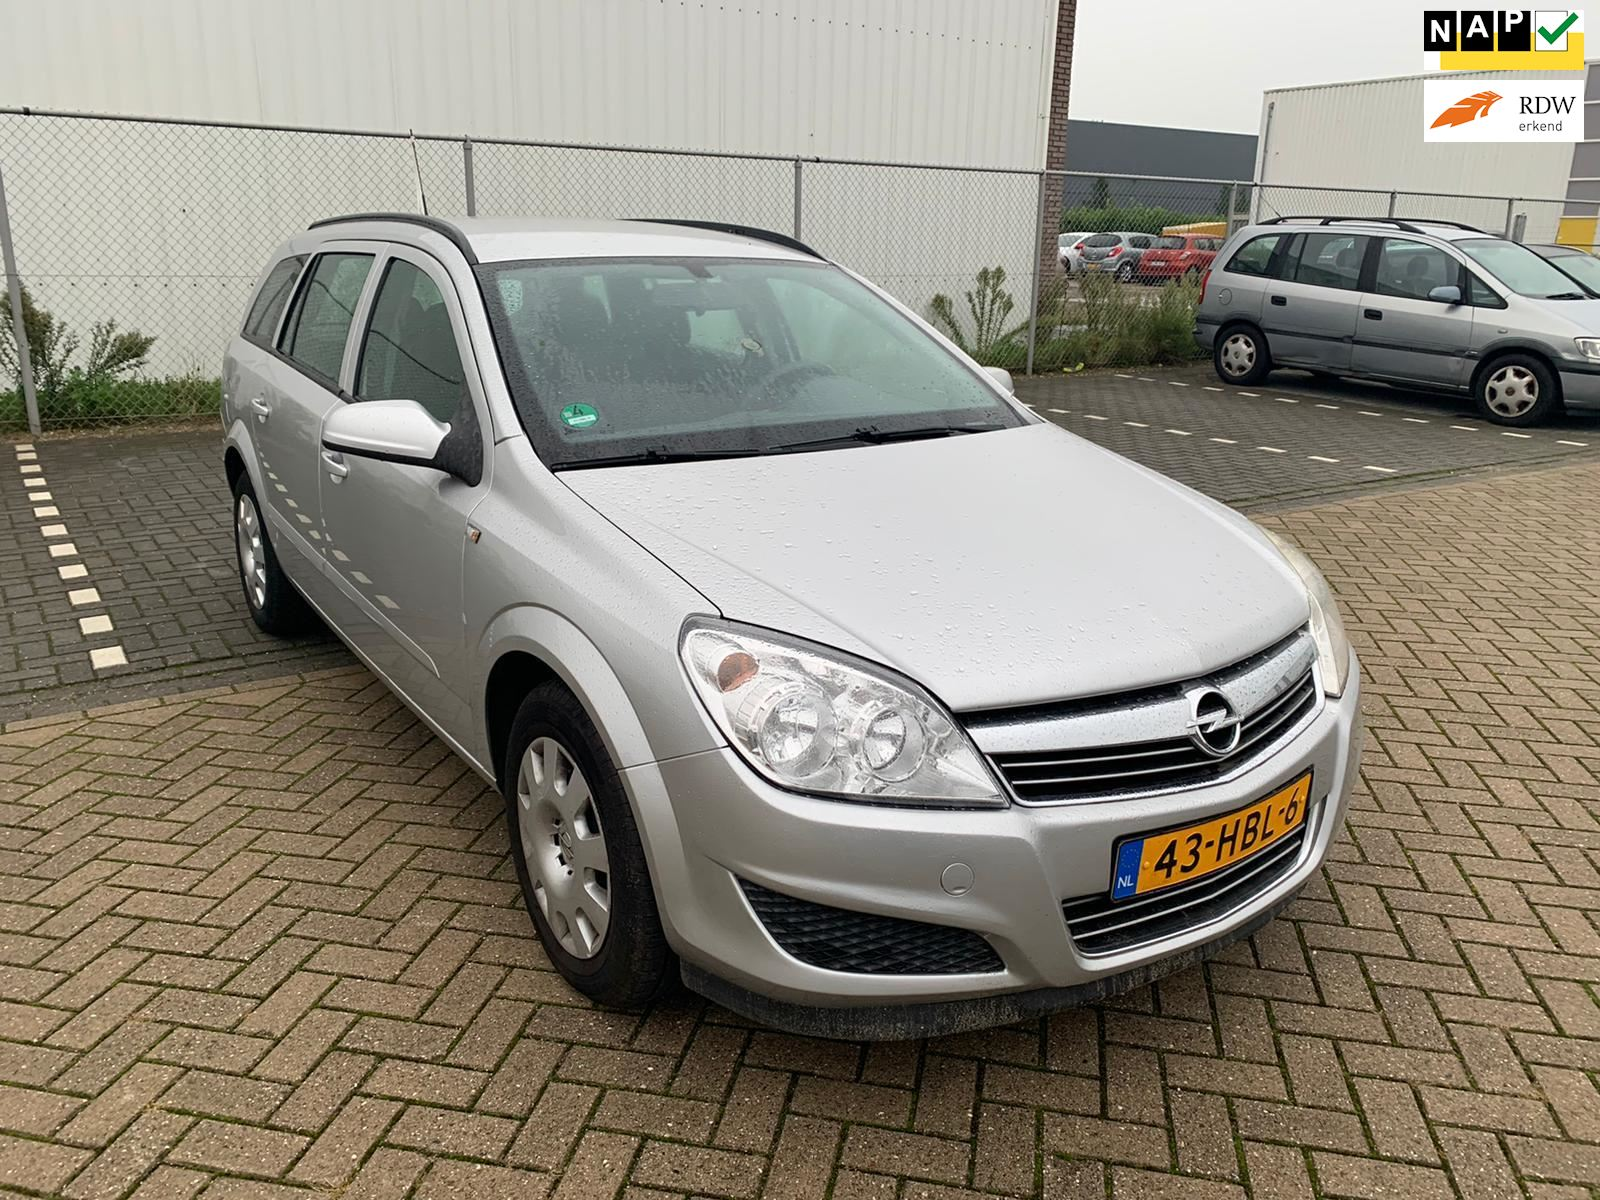 Opel Astra Wagon occasion - Van der Made Auto's